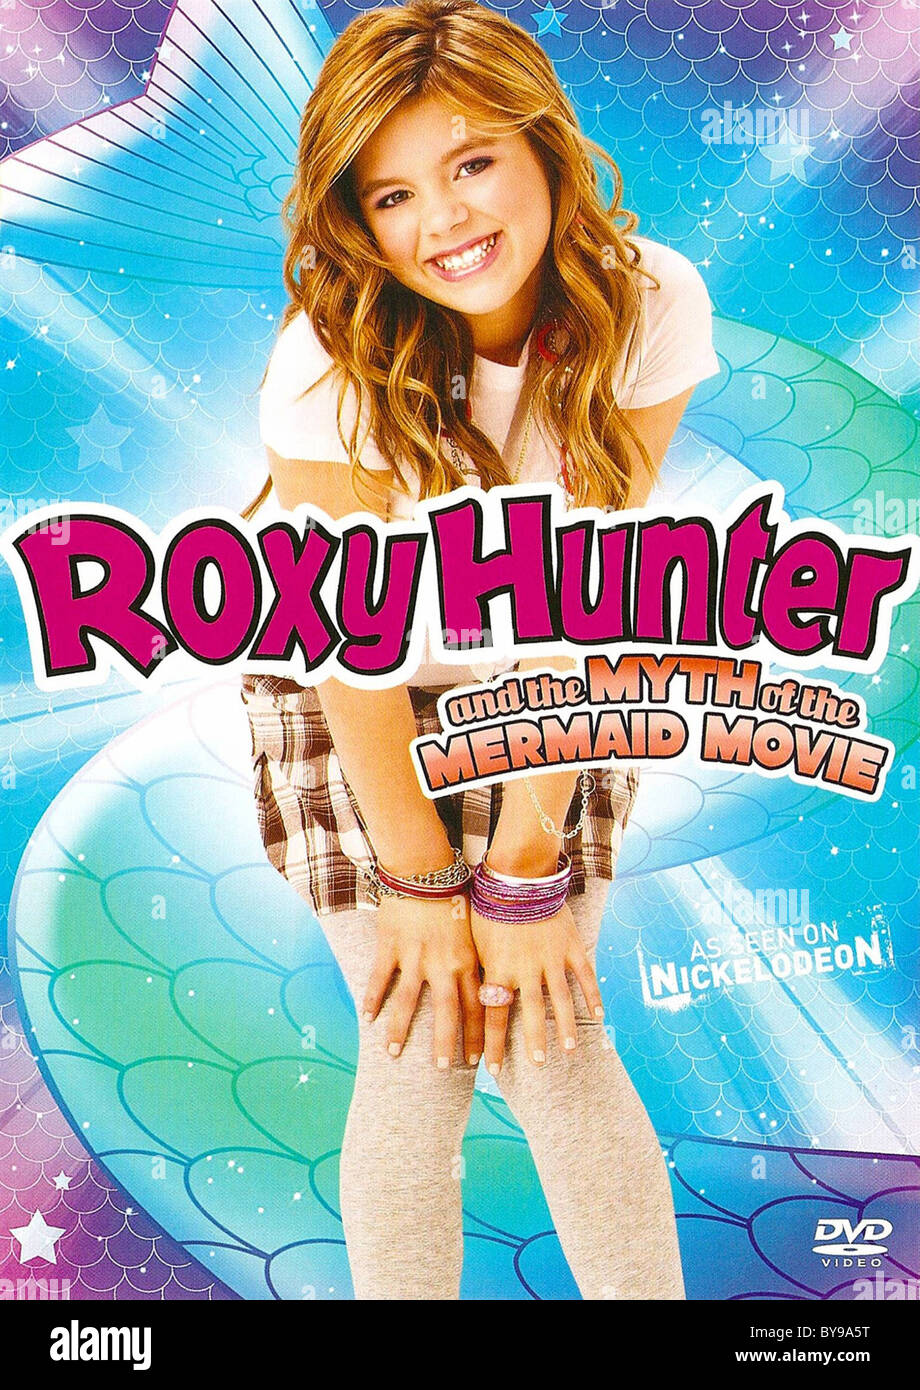 Roxy Hunter and the Myth of the Mermaid Year : 2008 USA Director : Eleanor Lindo Movie poster (USA) - Stock Image